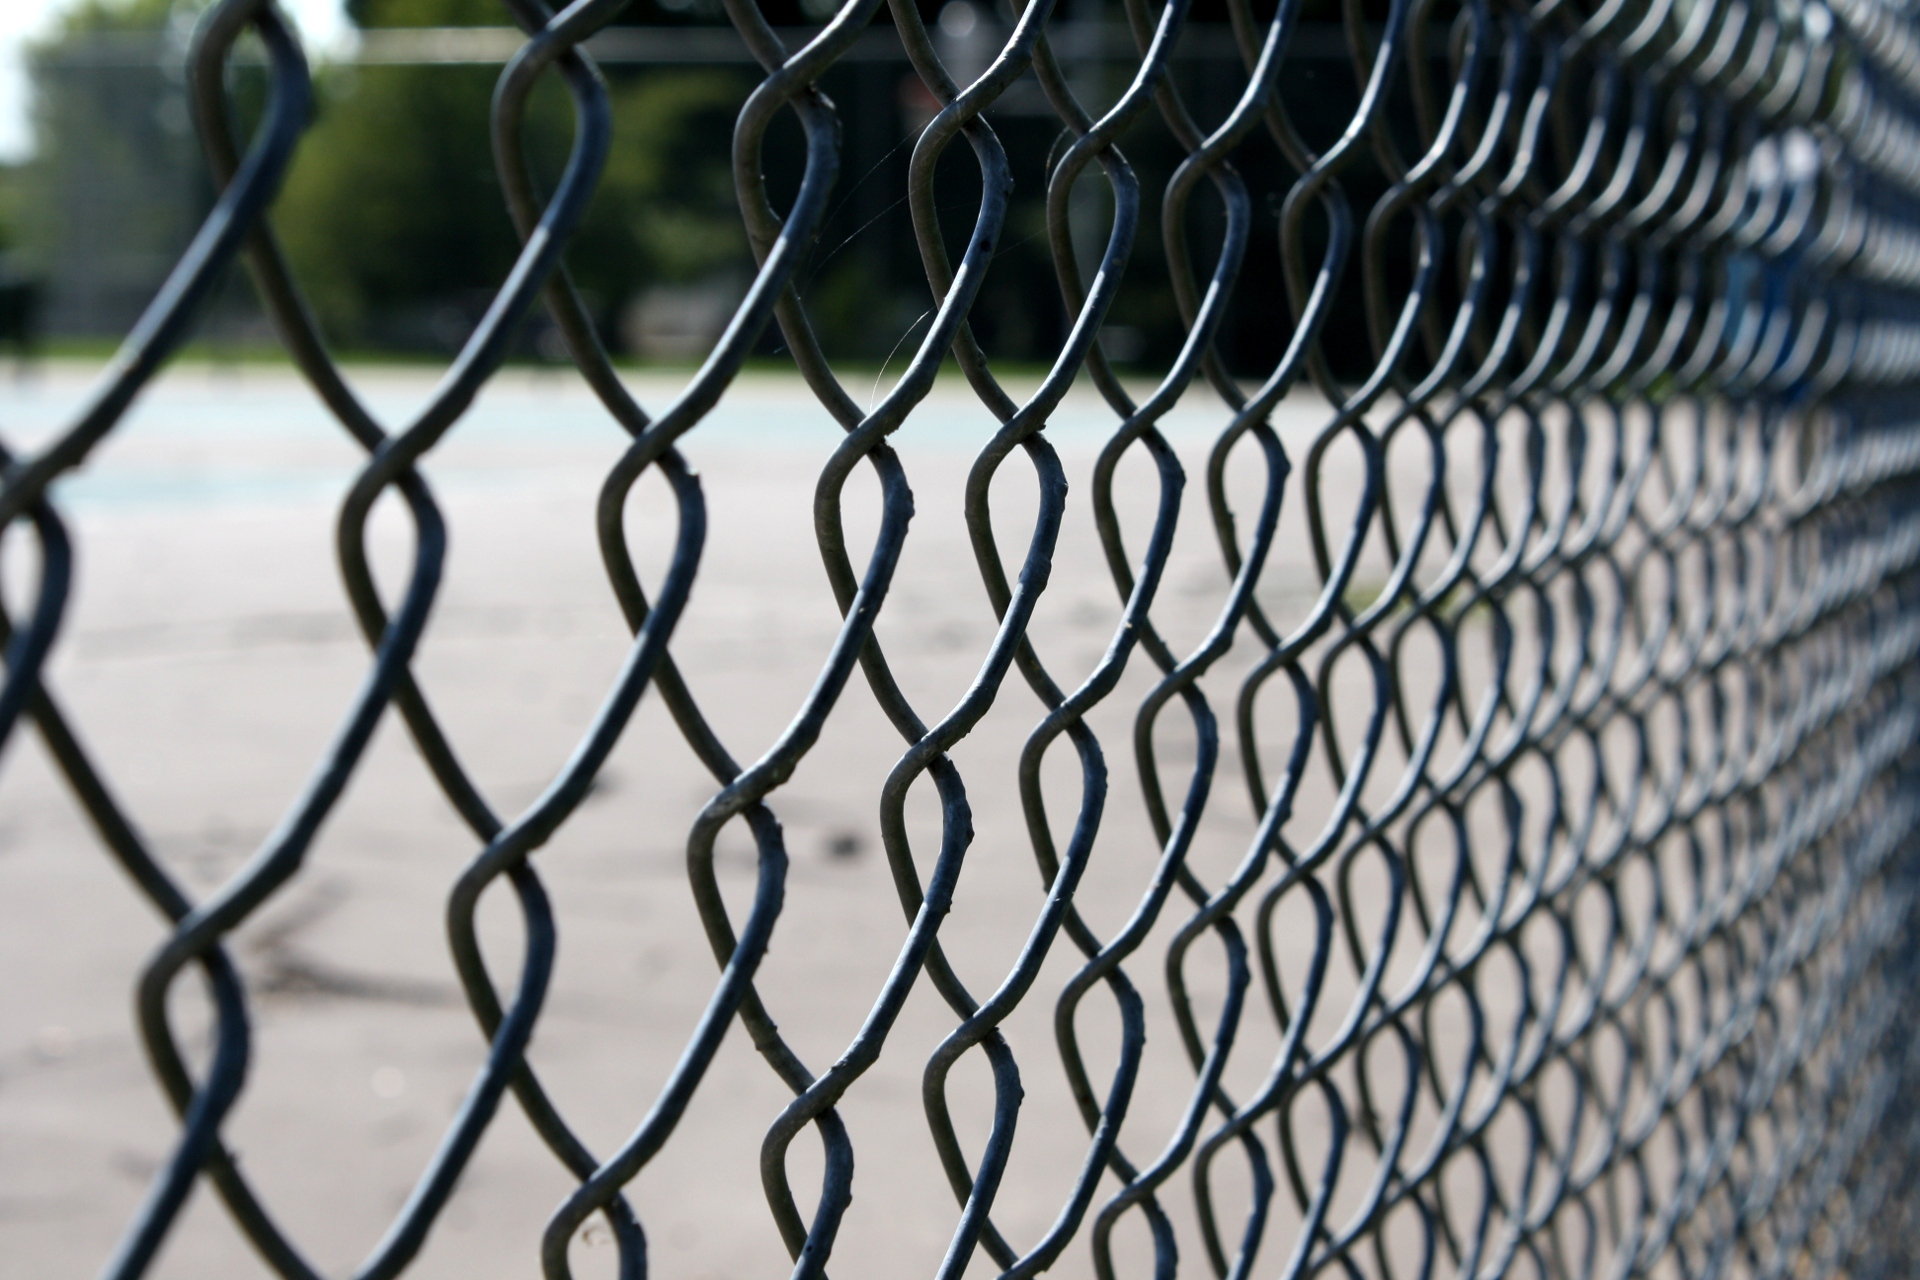 How to Make a Drag From Chain Link Fence | eHow.co.uk